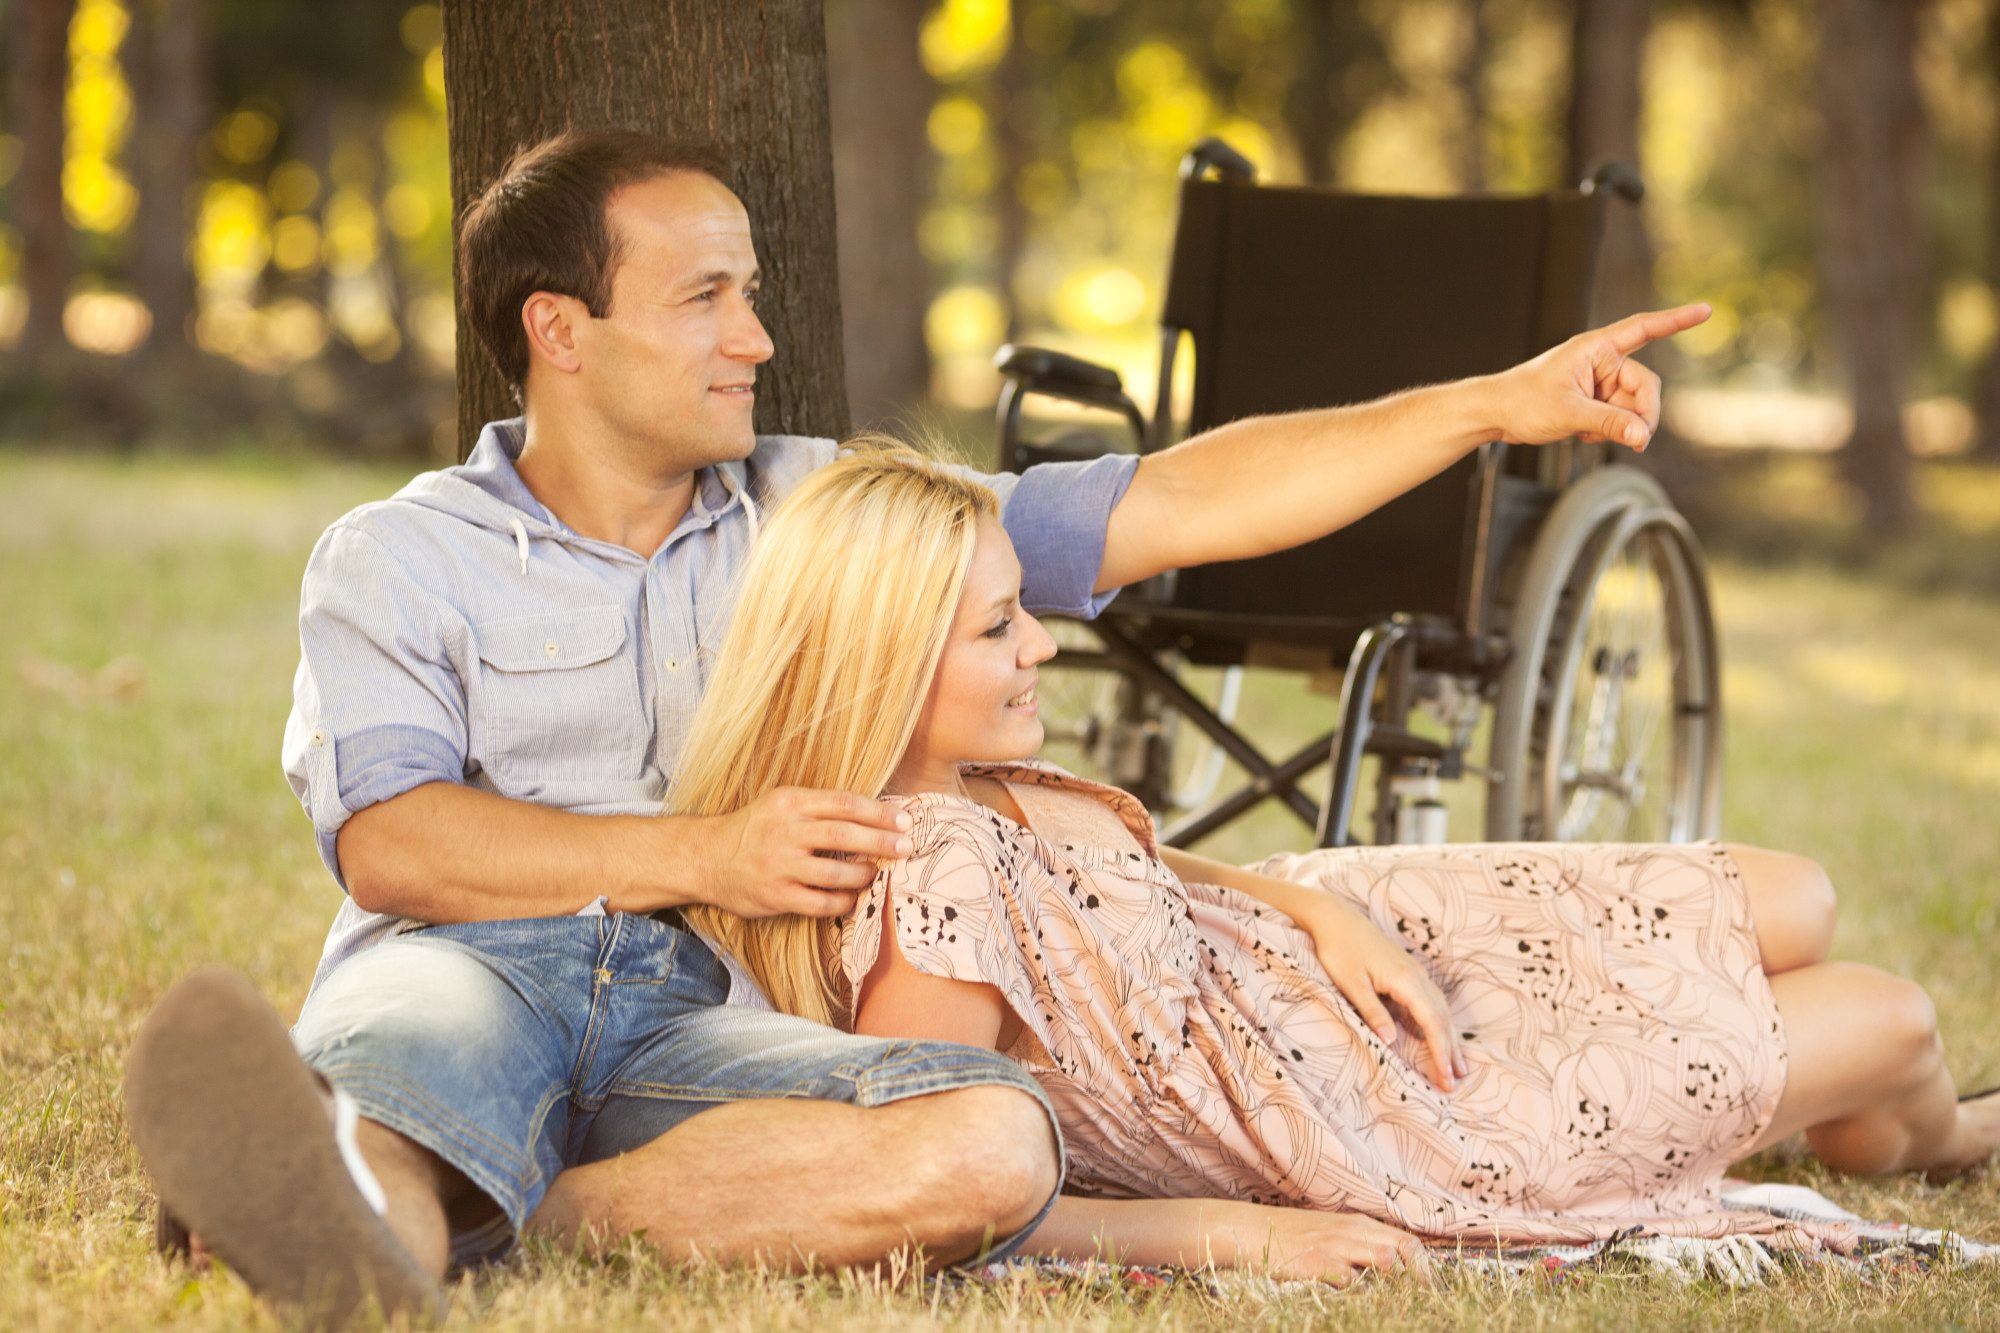 dating someone with learning disability Online dating is hard enough try doing it with a disability but helps in the algorithm many sites use that pairs people together on disabled-specific dating.